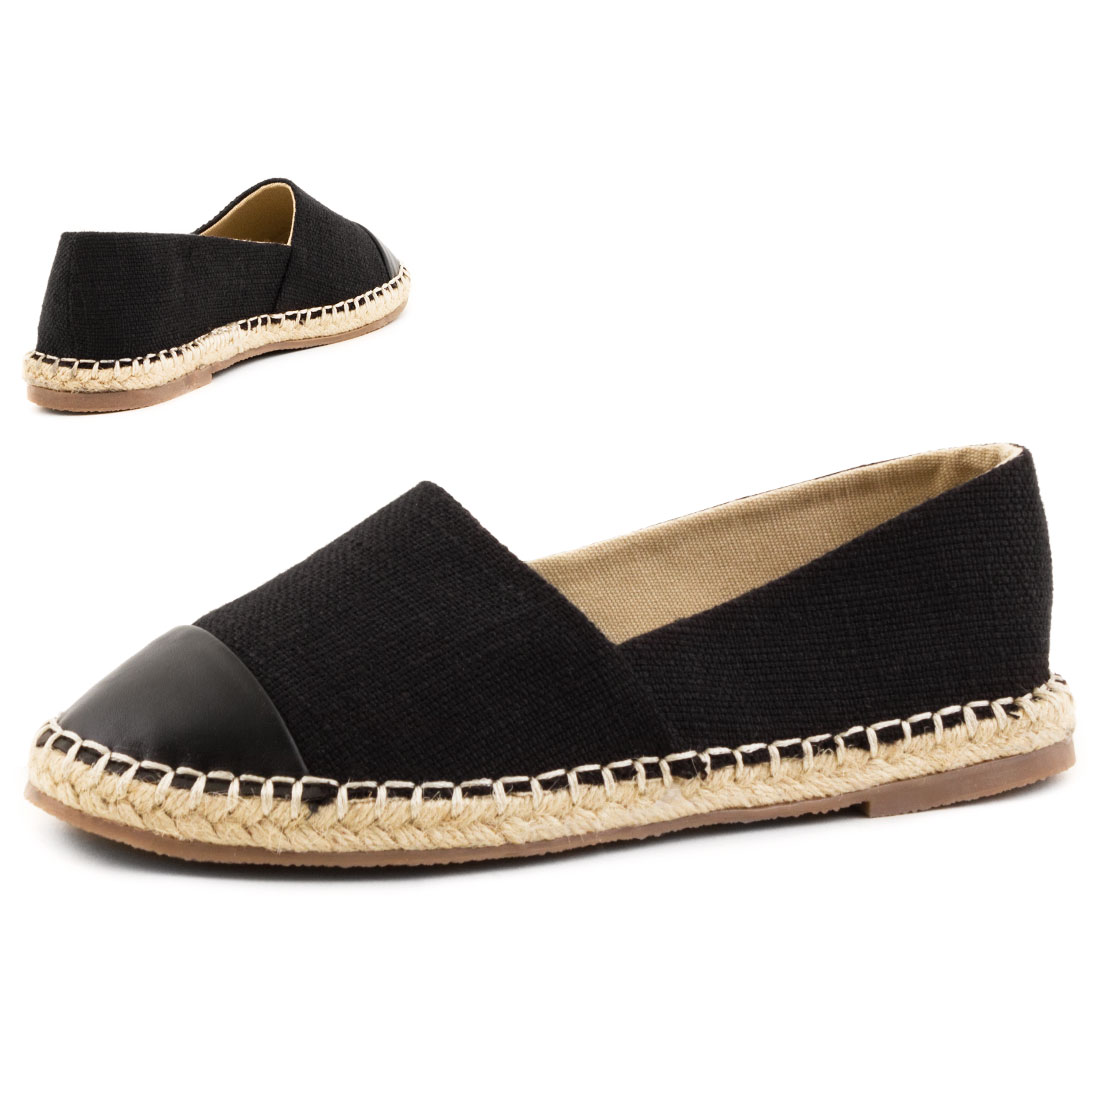 neu damen strass glitzer espadrilles sommer flats schuhe gr 36 37 38 39 40 41 ebay. Black Bedroom Furniture Sets. Home Design Ideas